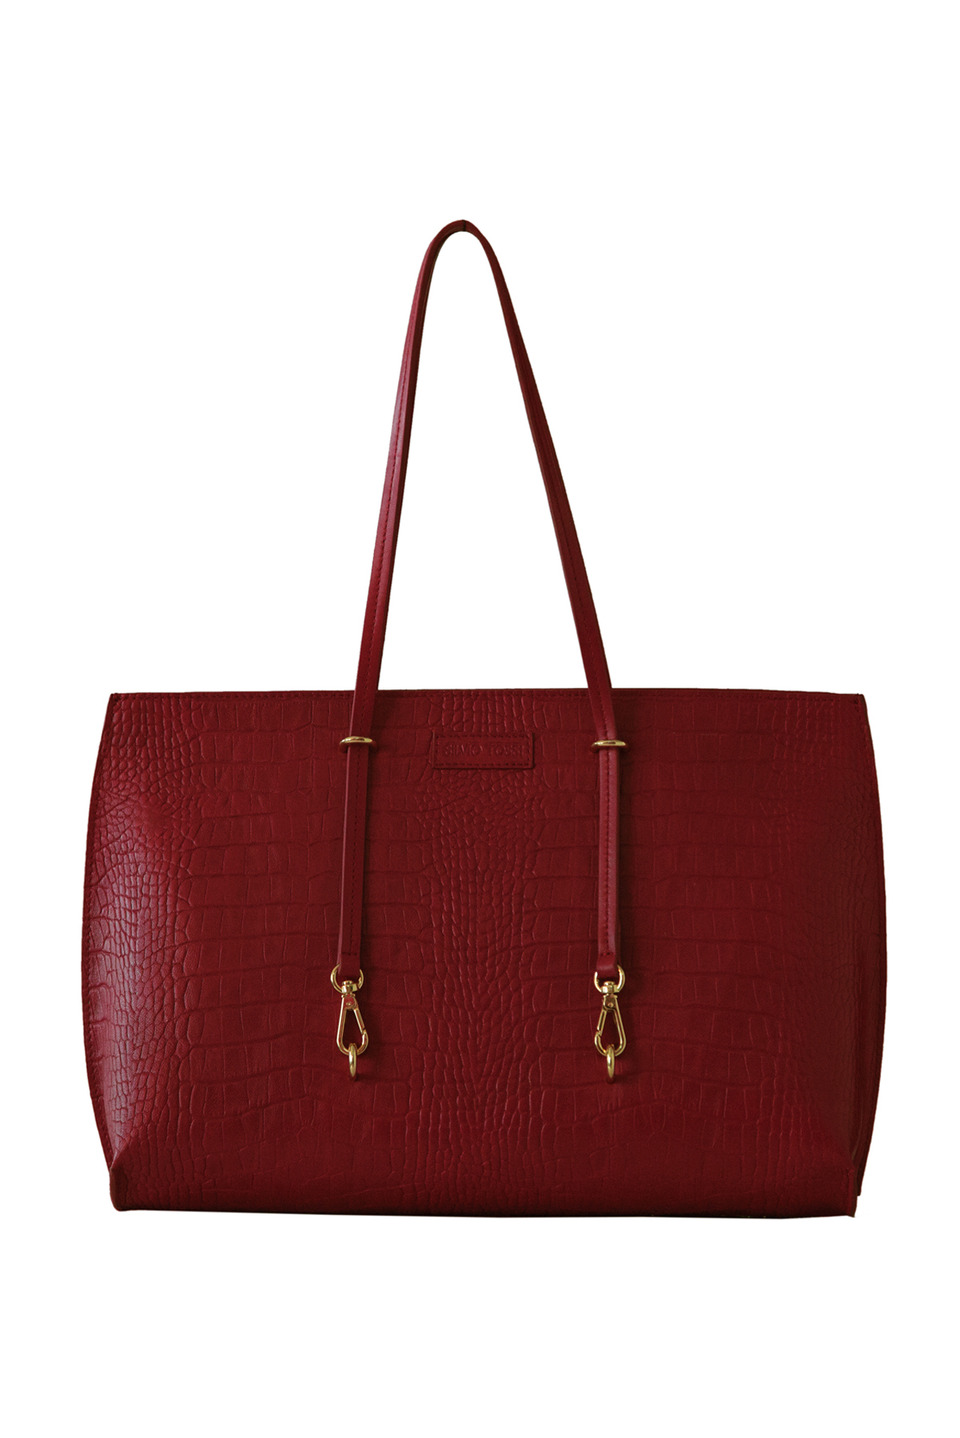 SABLE HANDBAG IN WINE